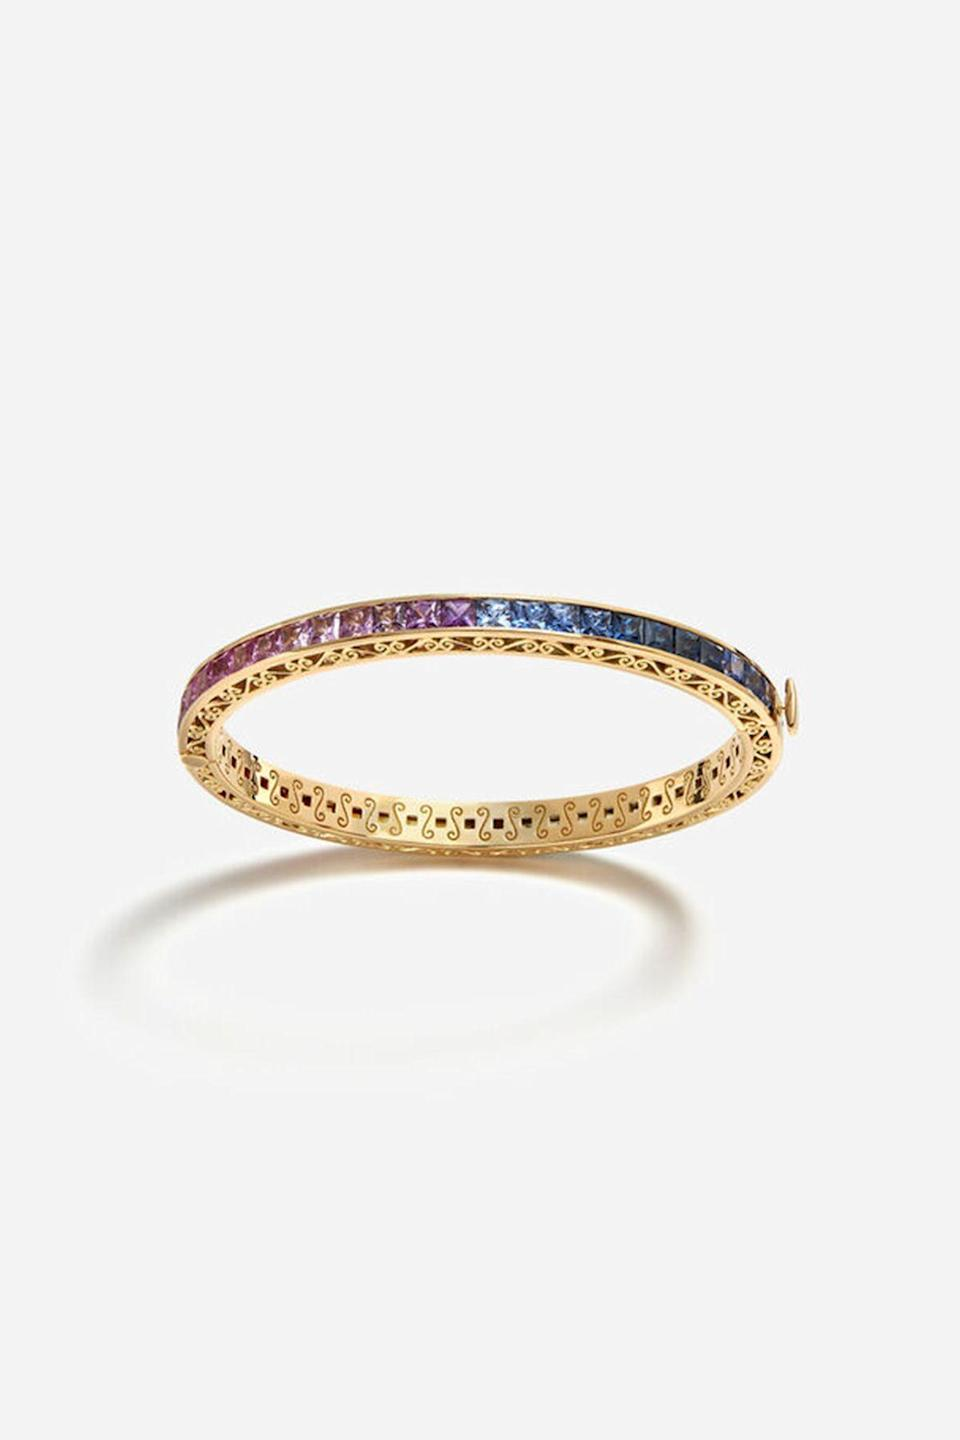 """<p><strong>Dolce & Gabbana</strong></p><p>dolcegabbana.com</p><p><strong>$19500.00</strong></p><p><a href=""""https://us.dolcegabbana.com/en/watchesandjewelry/women/jewelry/multicolor-sapphire-bracelet-gold-WBLB5GWMIX1ZOO00.html?cgid=women-jewellery#prefn1=customFilter3&prefv1=Bracelets&page=1&start=8"""" rel=""""nofollow noopener"""" target=""""_blank"""" data-ylk=""""slk:Shop Now"""" class=""""link rapid-noclick-resp"""">Shop Now</a></p><p>Rainbows are ultra-sophisticated when they are made with sparkling sapphires. </p>"""